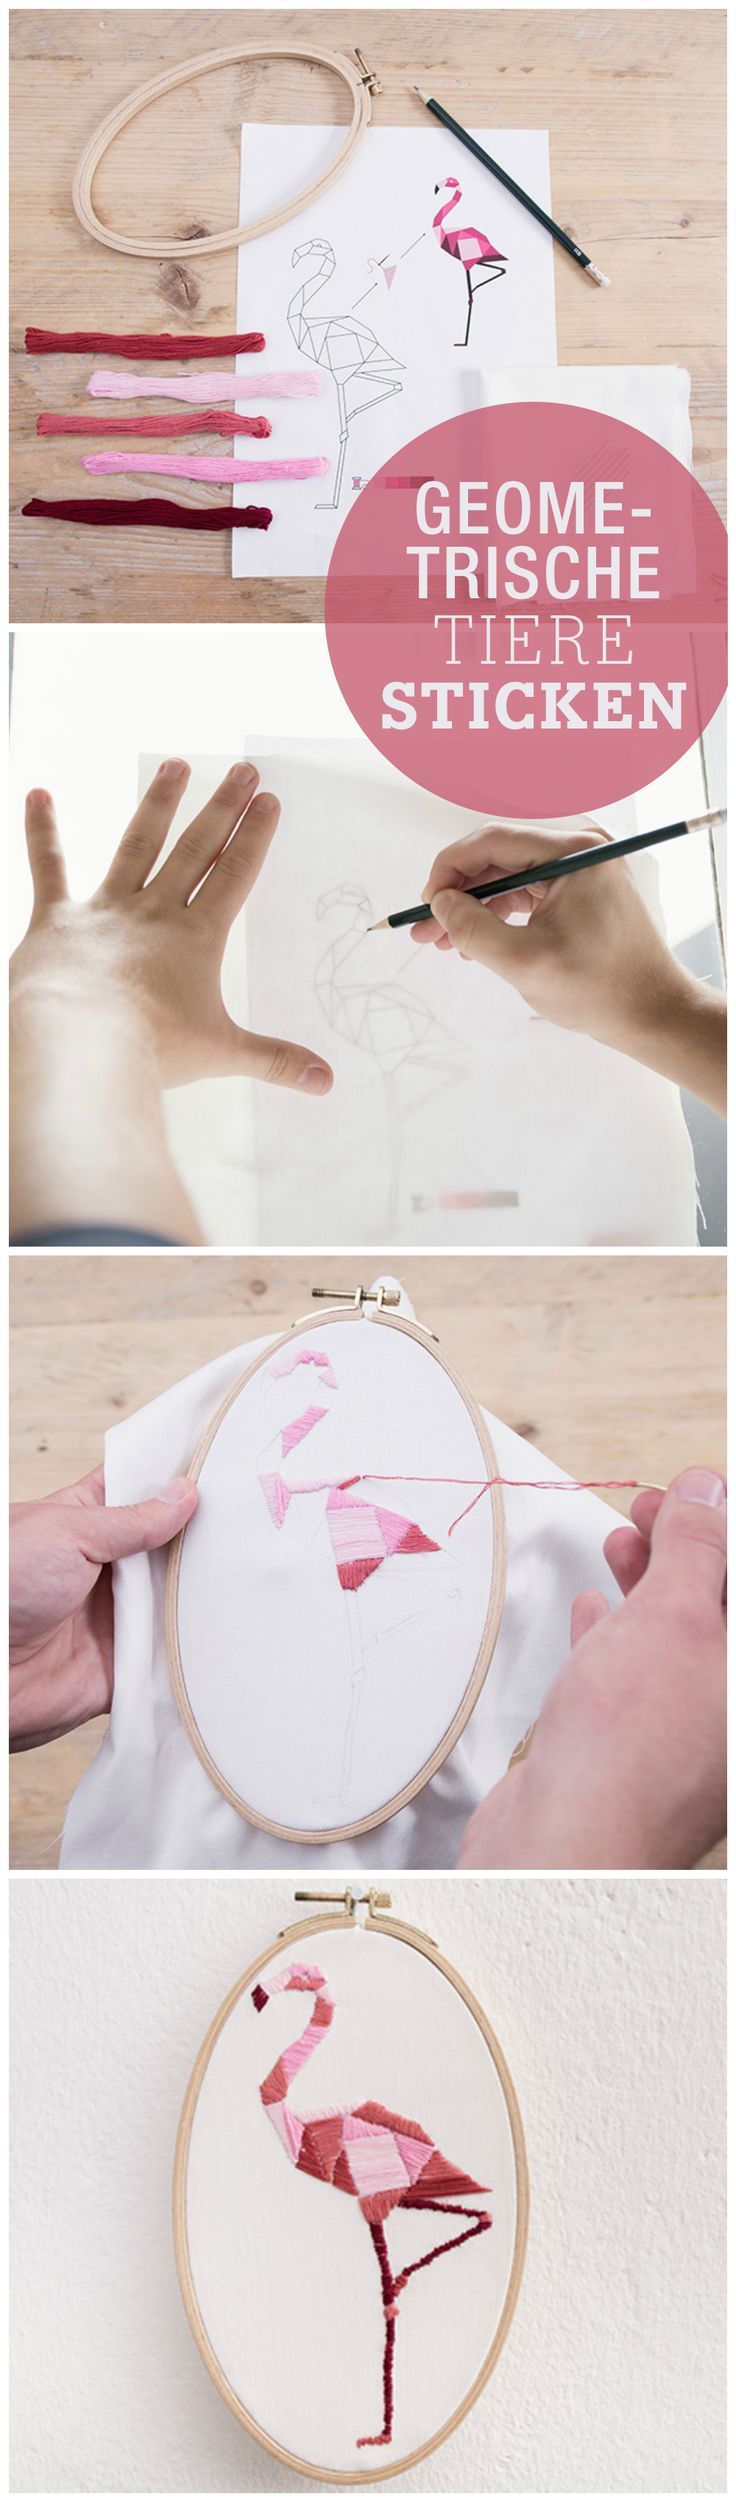 Kostenlose Anleitung: Geometrische Tiere im Stickrahmen, sticken lernen, Flamingo / free diy tutorial: create embroidery animals, geometric, pink flamingo via DaWanda.com